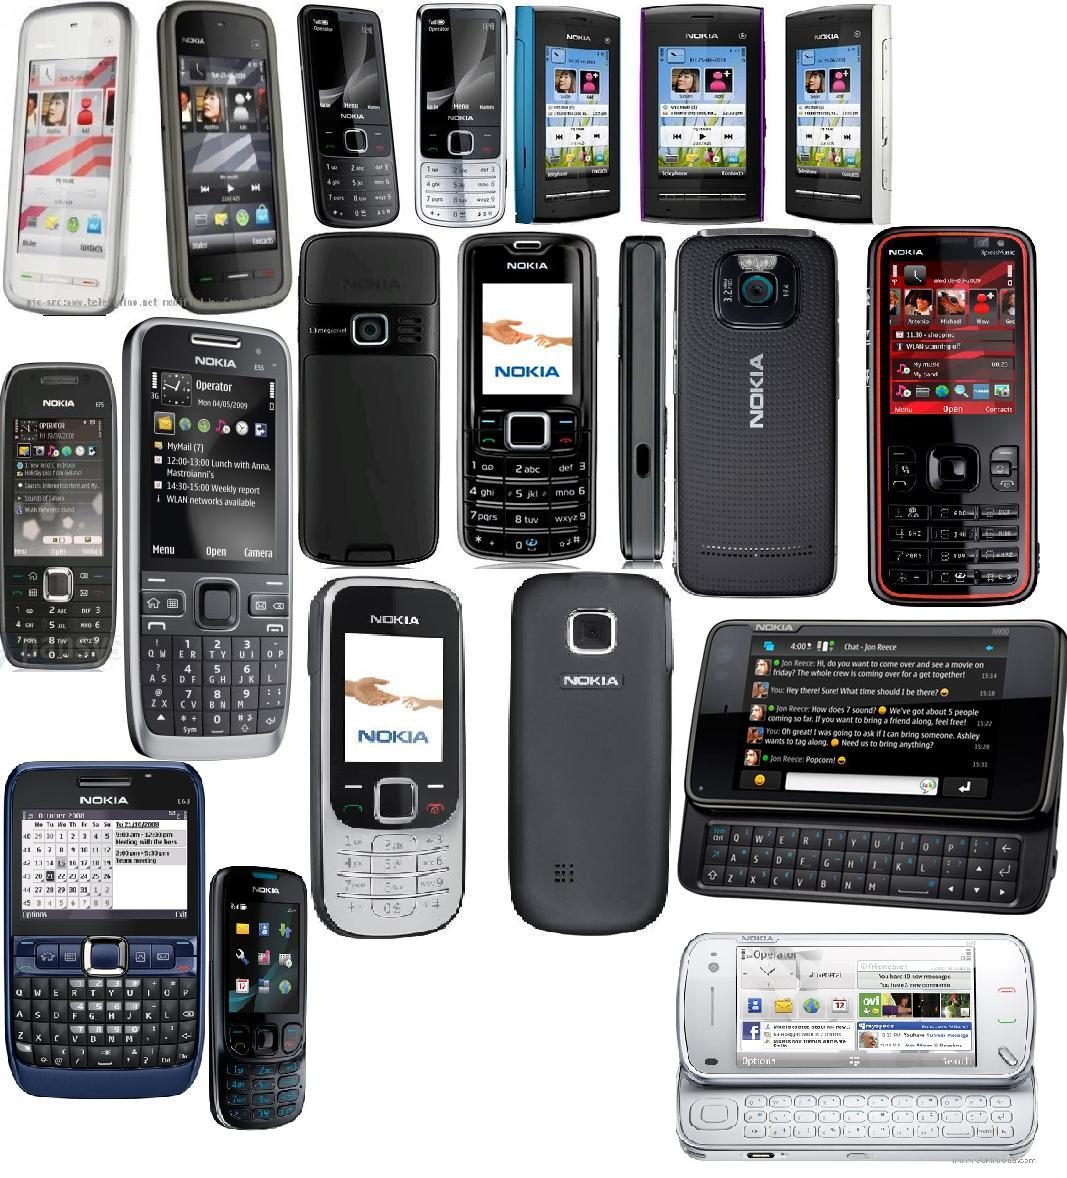 http://2.bp.blogspot.com/-0mL_1b1Yr2U/Td-DbuABIqI/AAAAAAAAAFE/Mb6fEi6XsO4/s1600/Nokia%20Mobile%20Phones%20-%20Several%20Models%20by%20Different%20Configuration.JPG